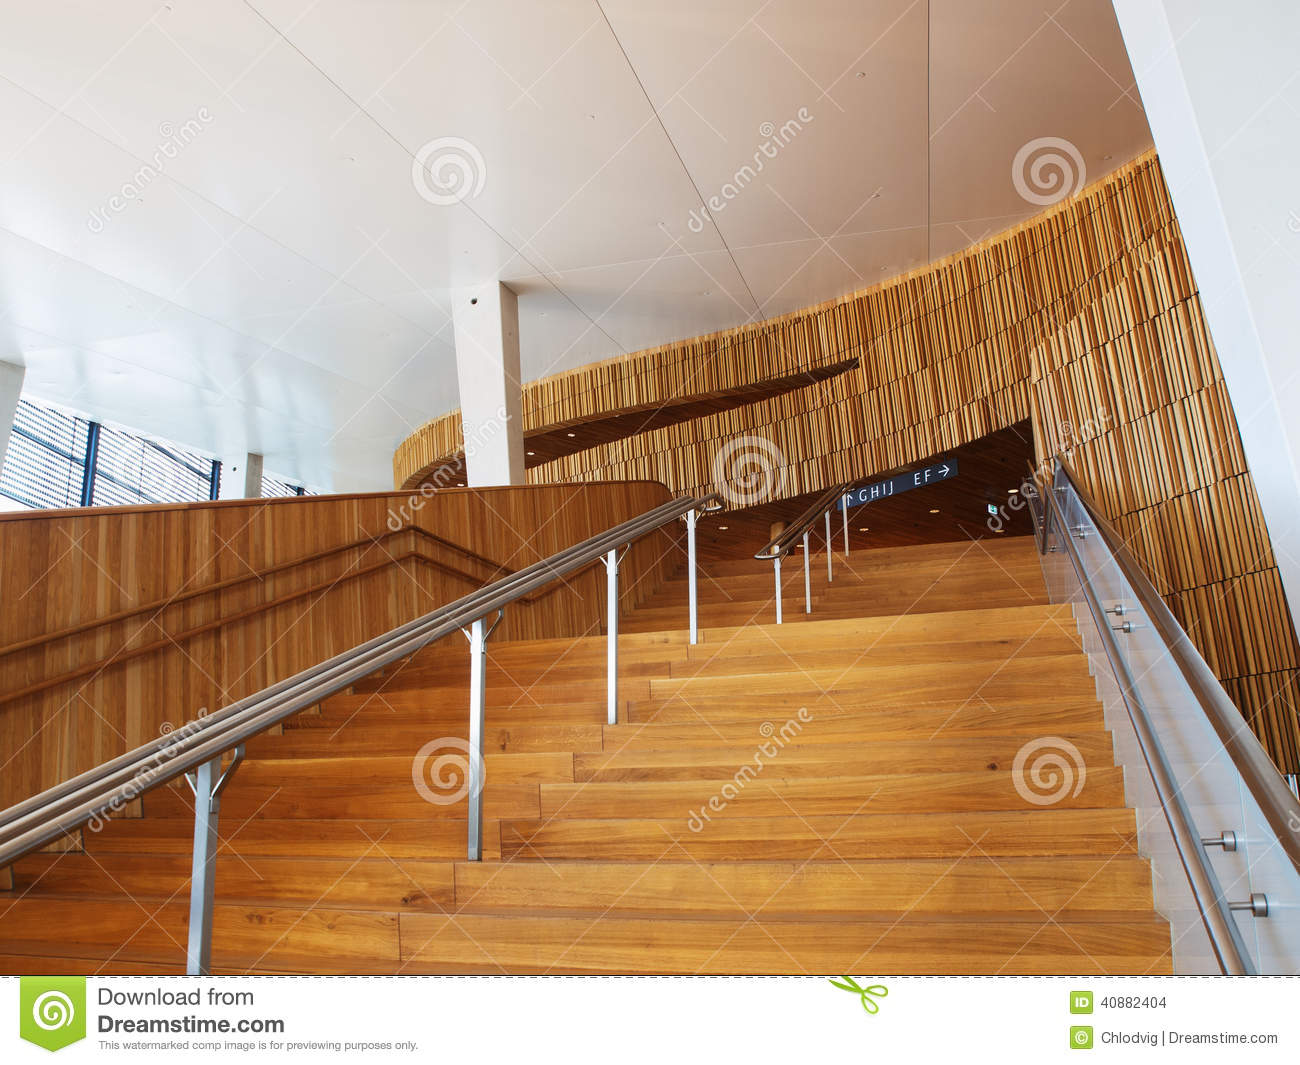 Modern Architecture Interior modern architecture oslo norway stock photos, images, & pictures